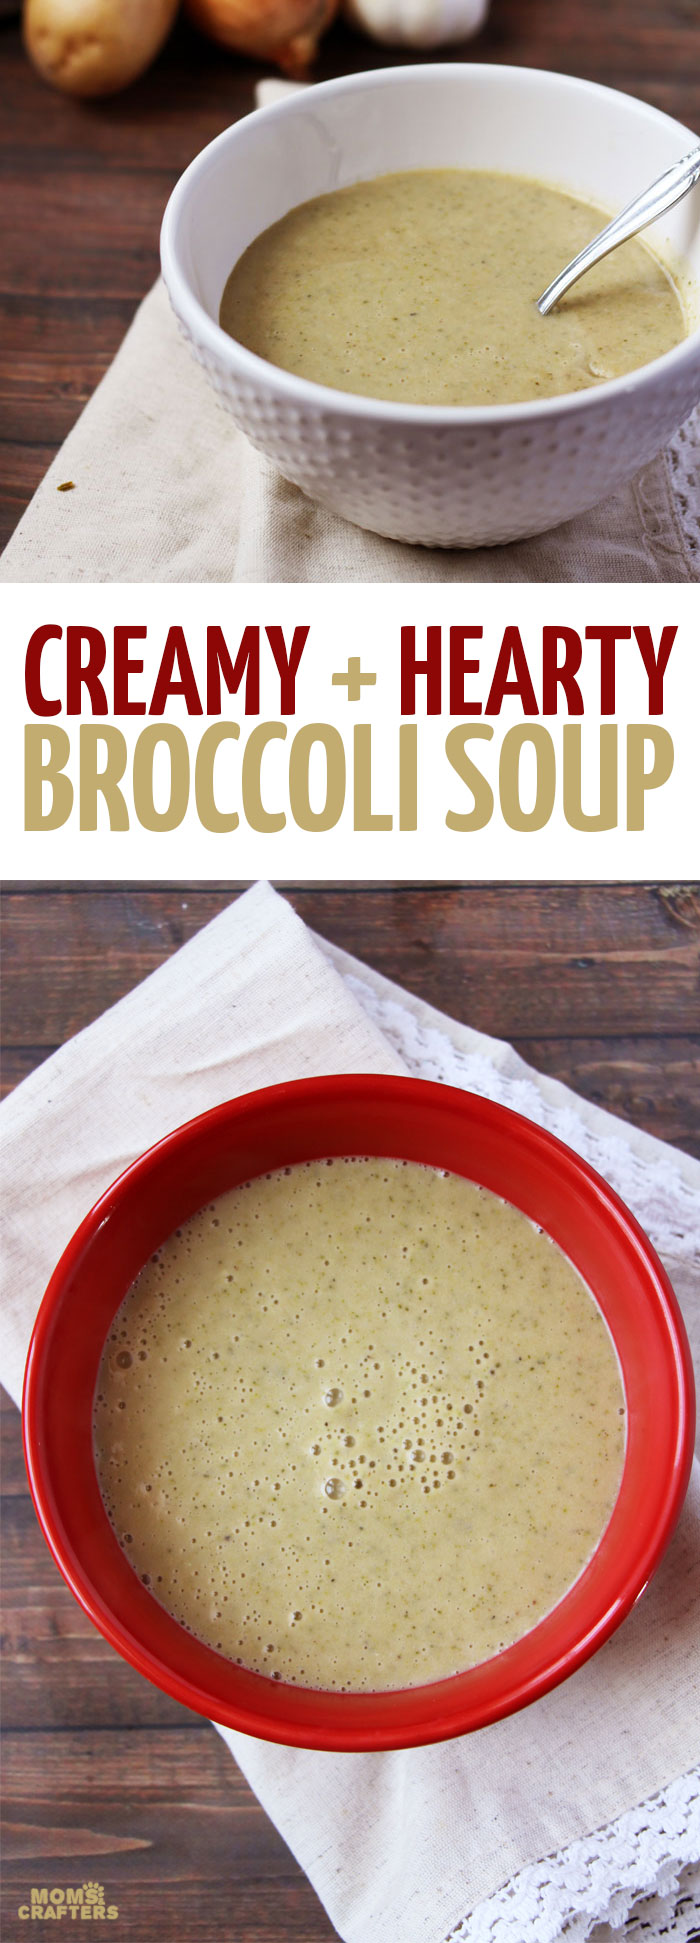 Make this delicious, easy and hearty creamy broccoli soup recipe. It's ...